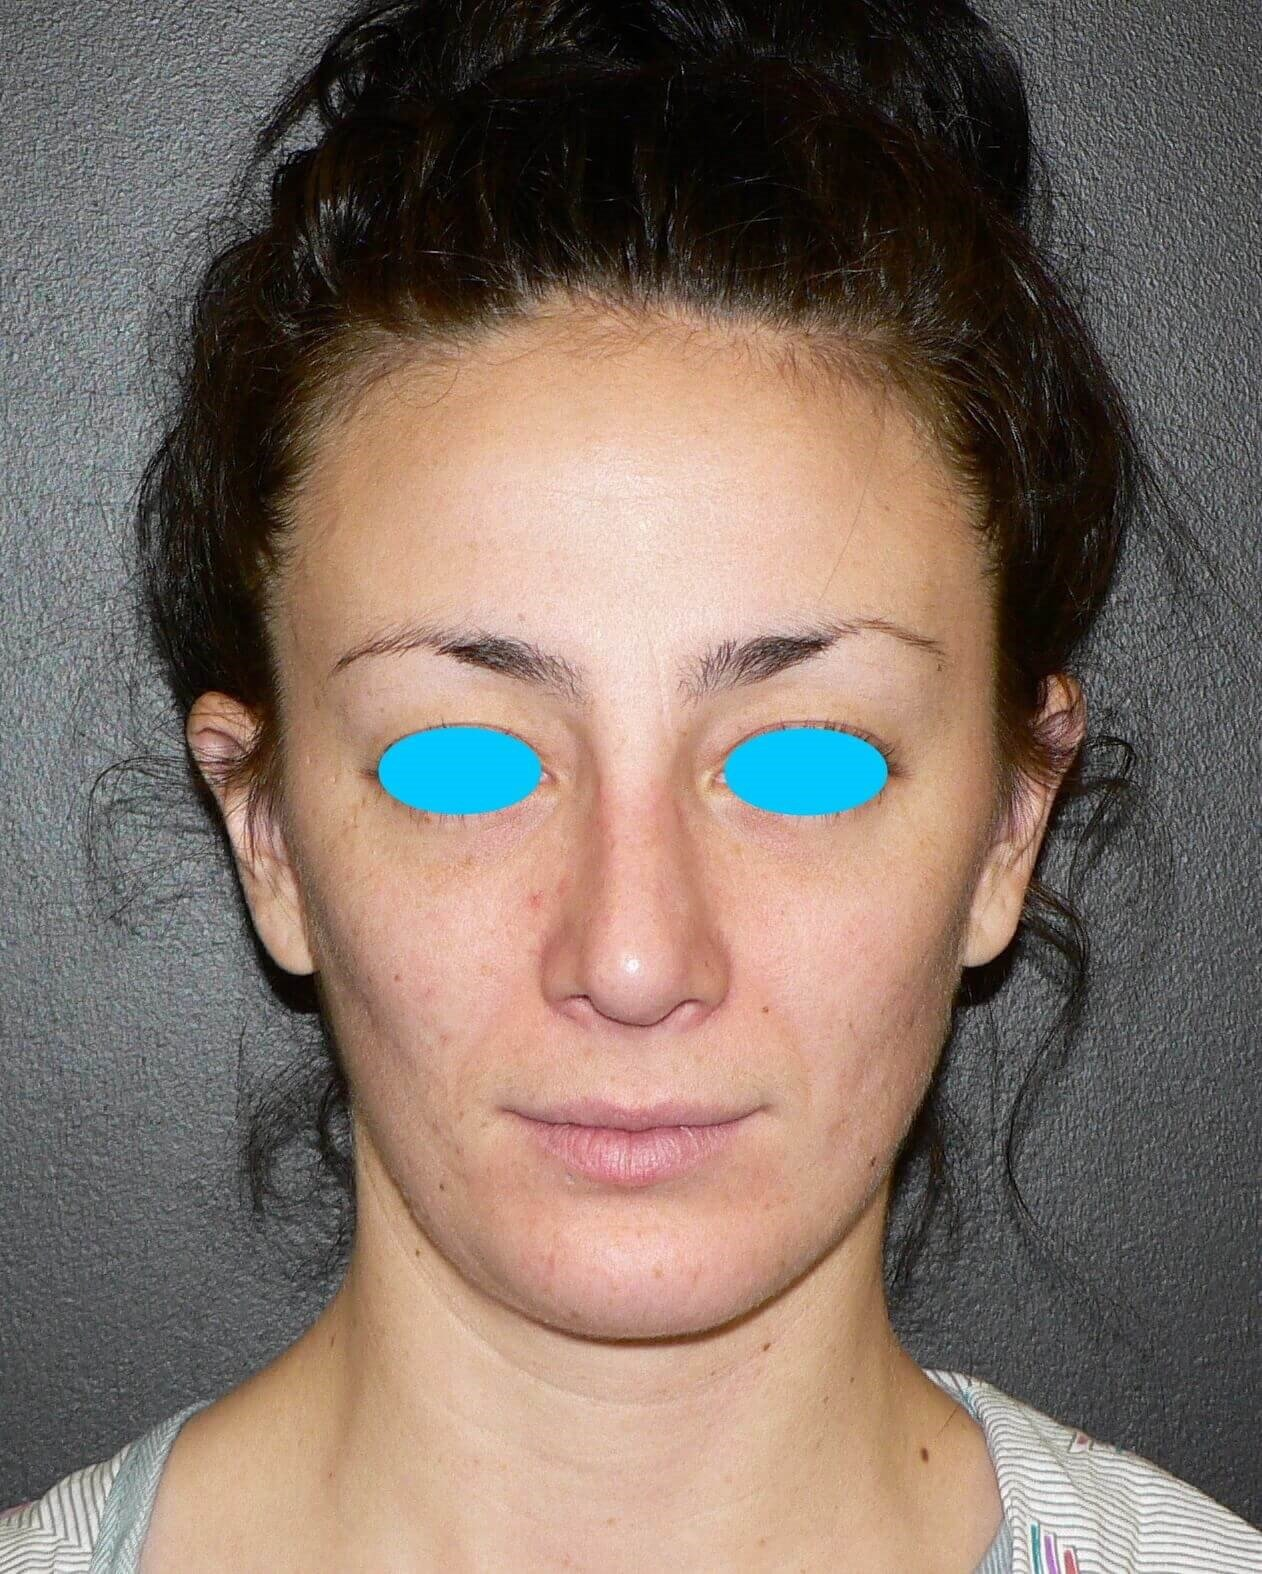 Revision Rhinoplasty Denver After